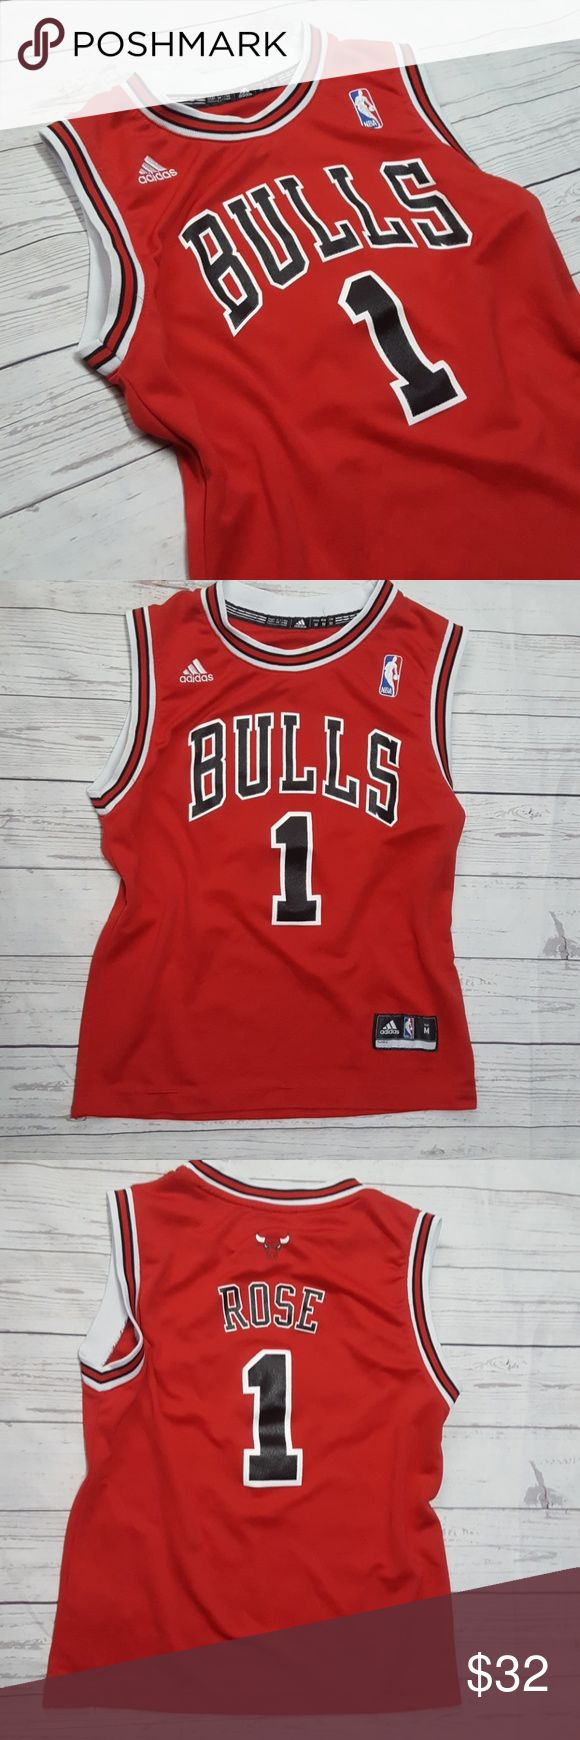 Adidas NBA Bulls Rose #1 Jersey Good condition just some snags and loose threads (see photos) adidas Tops